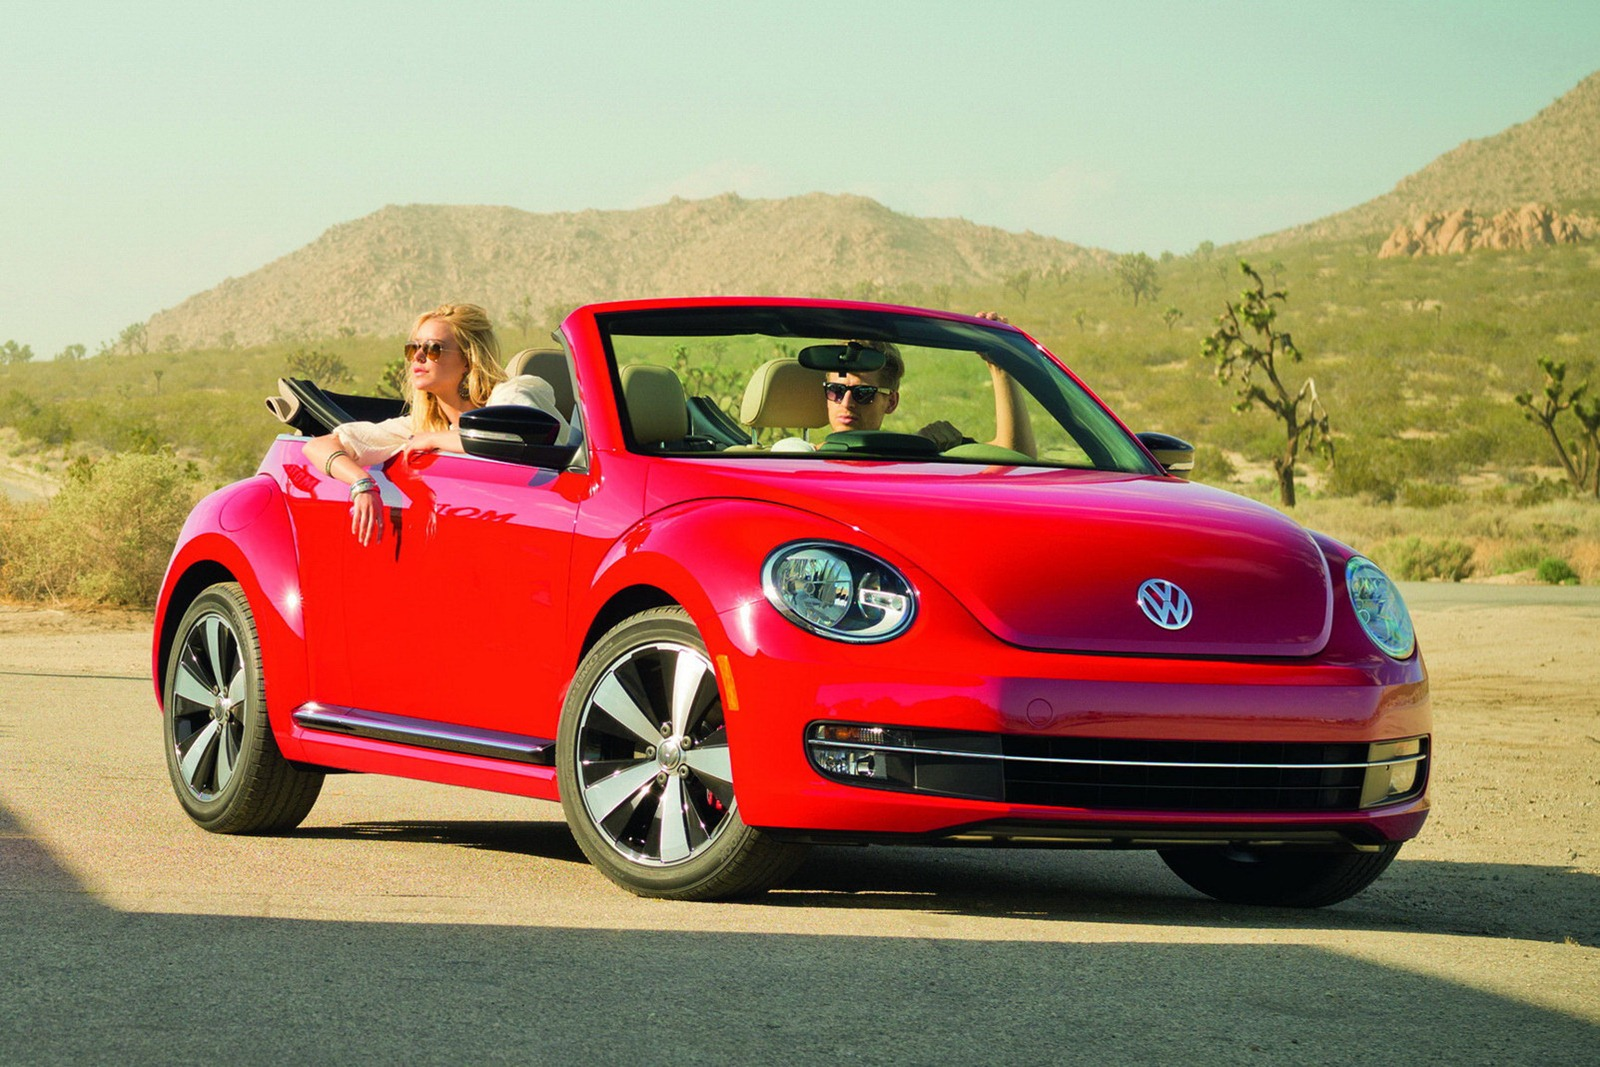 Volkswagen Beetle Convertible >> 2013 Volkswagen Beetle Convertible Revealed - autoevolution